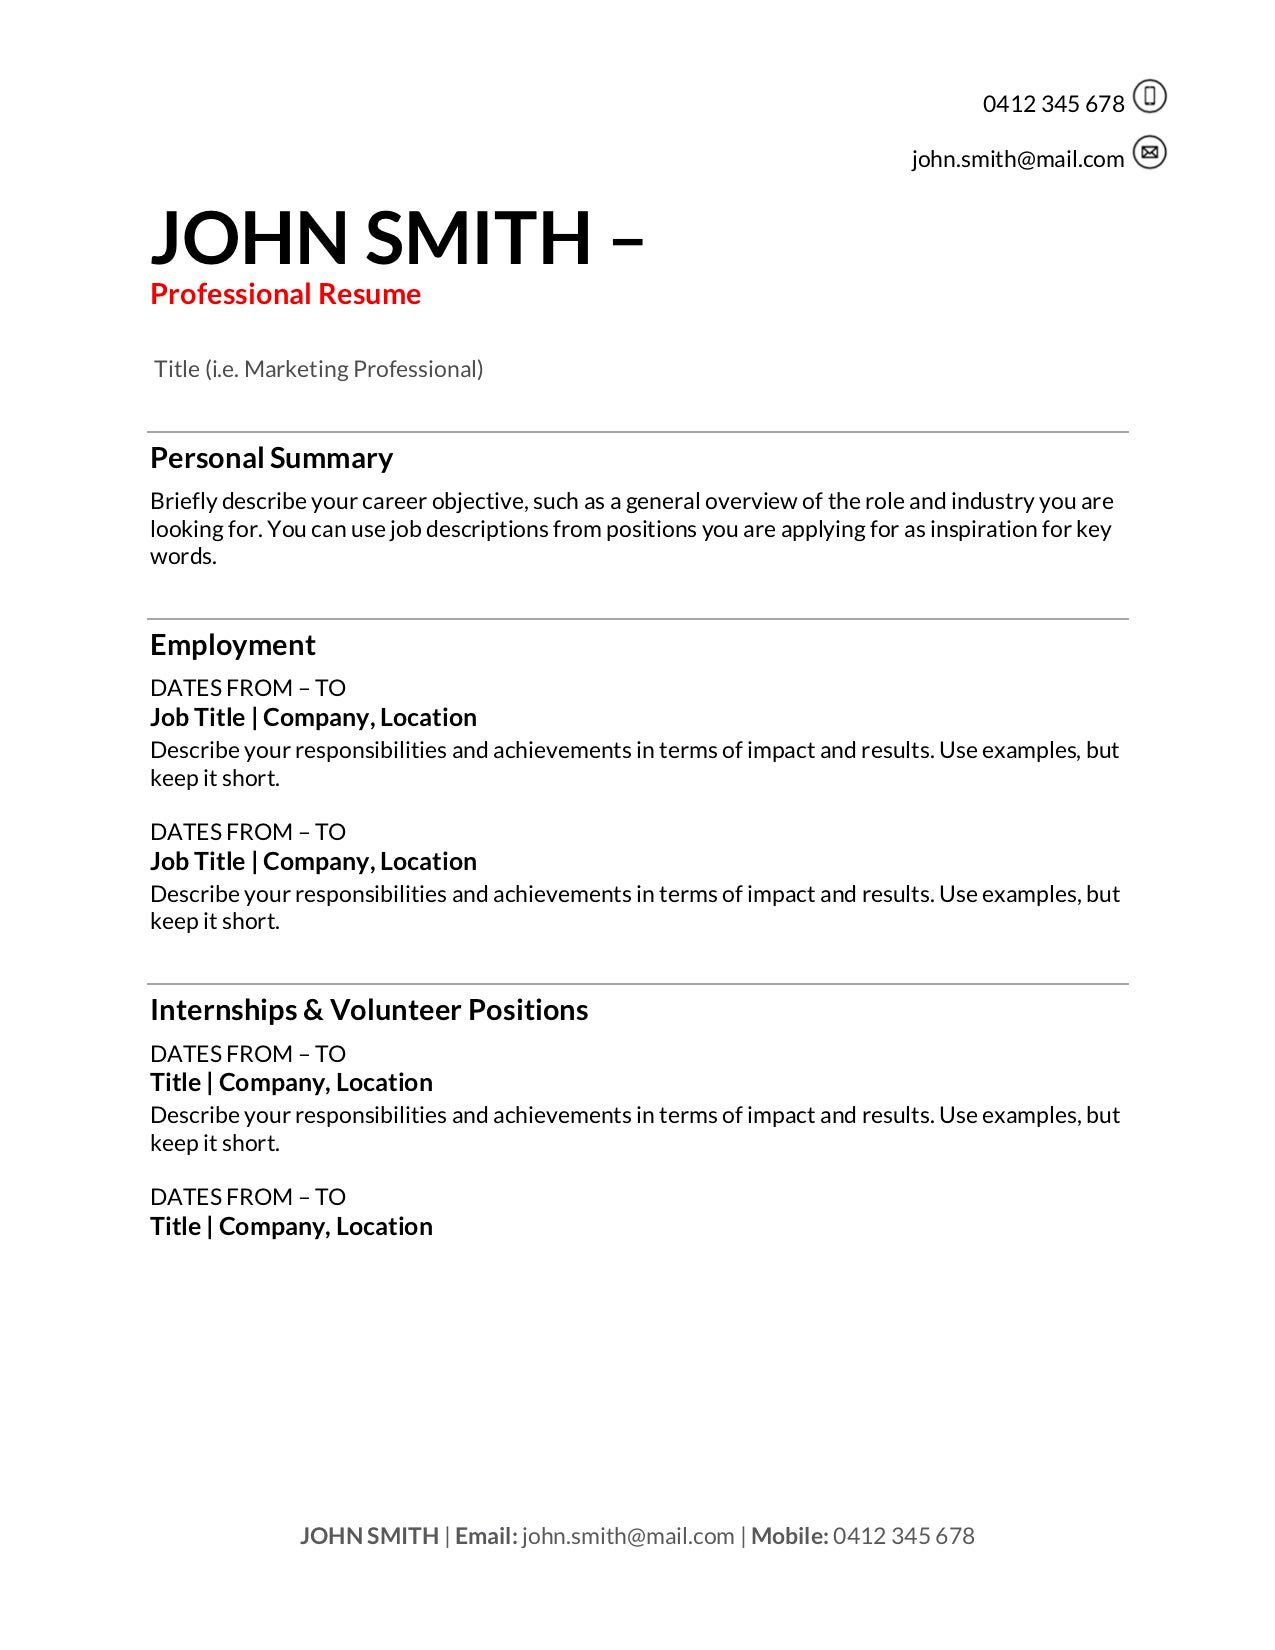 006 Impressive Resume Template For First Job High Def  Free TeenagerFull